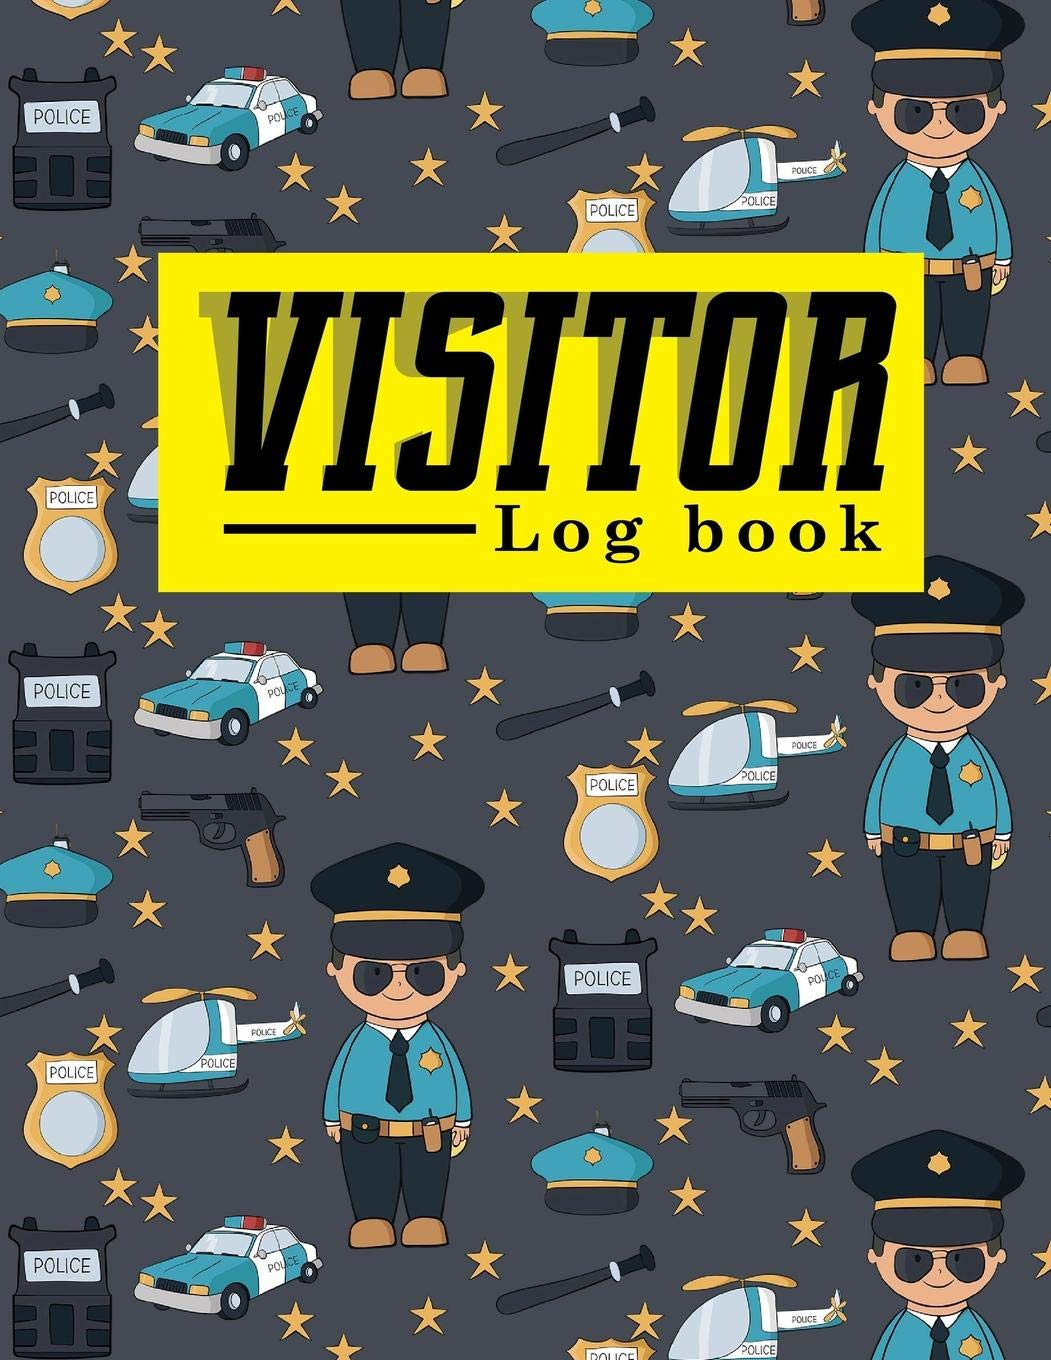 Amazon Com Visitor Log Book Visitor Guest Book Visitor Signing Book Visitor Registration Visitors Register Book Template For Signing In And Out 8 5 X 27 Cute Police Cover Visitor Log Books Volume 69